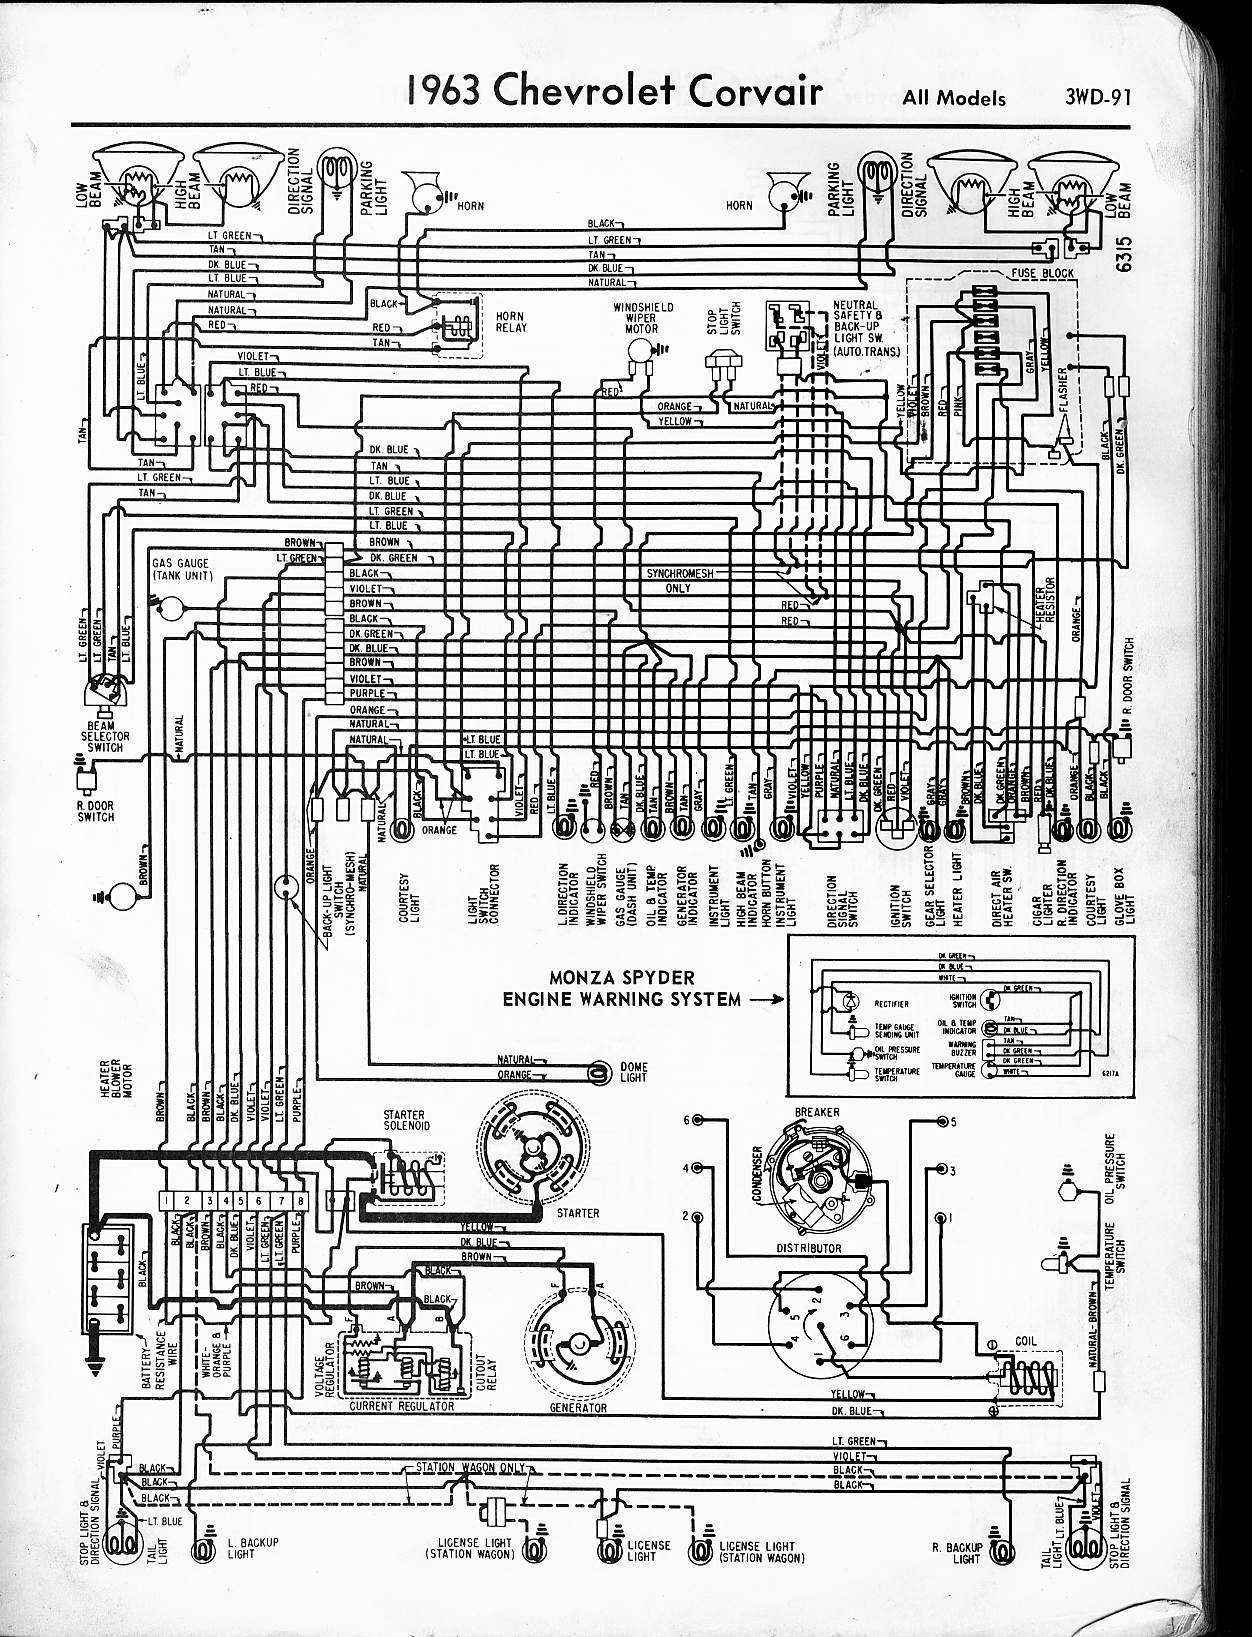 MWireChev63_3WD 091 57 65 chevy wiring diagrams 1963 corvair wiring diagram at gsmx.co